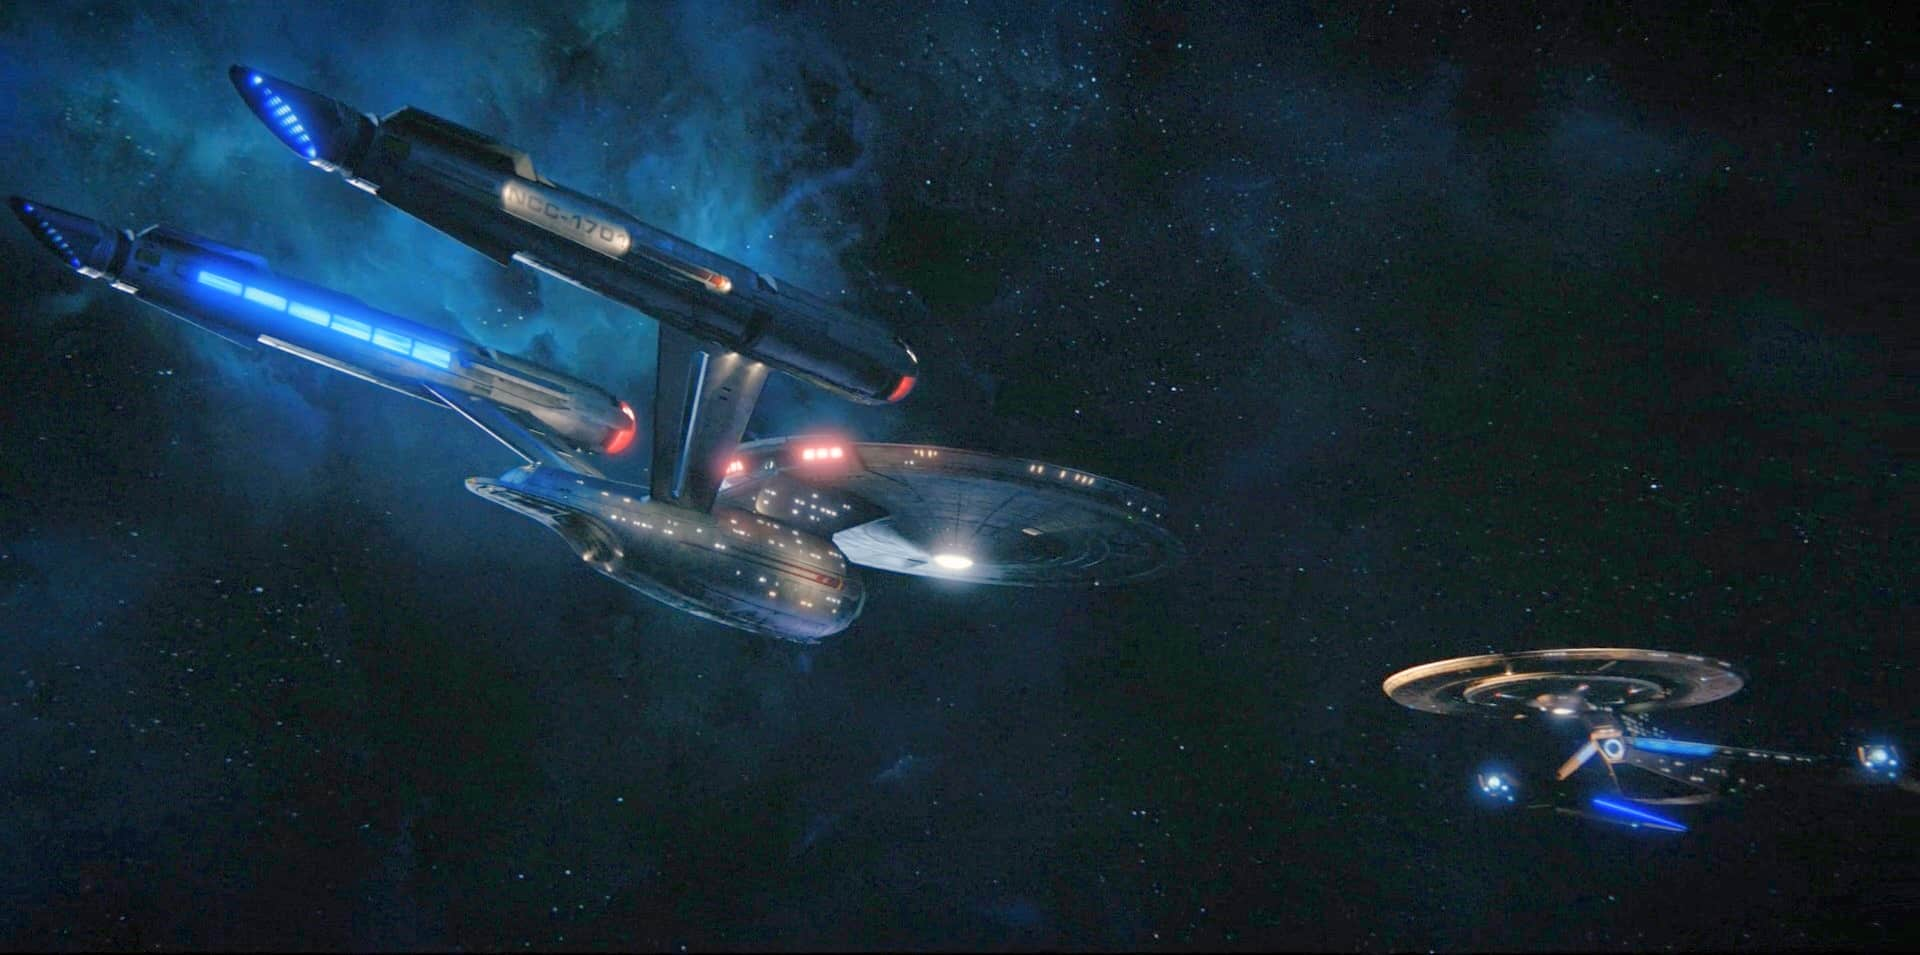 ViacomCBS deal reunites Star Trek Discovery and the Enterprise